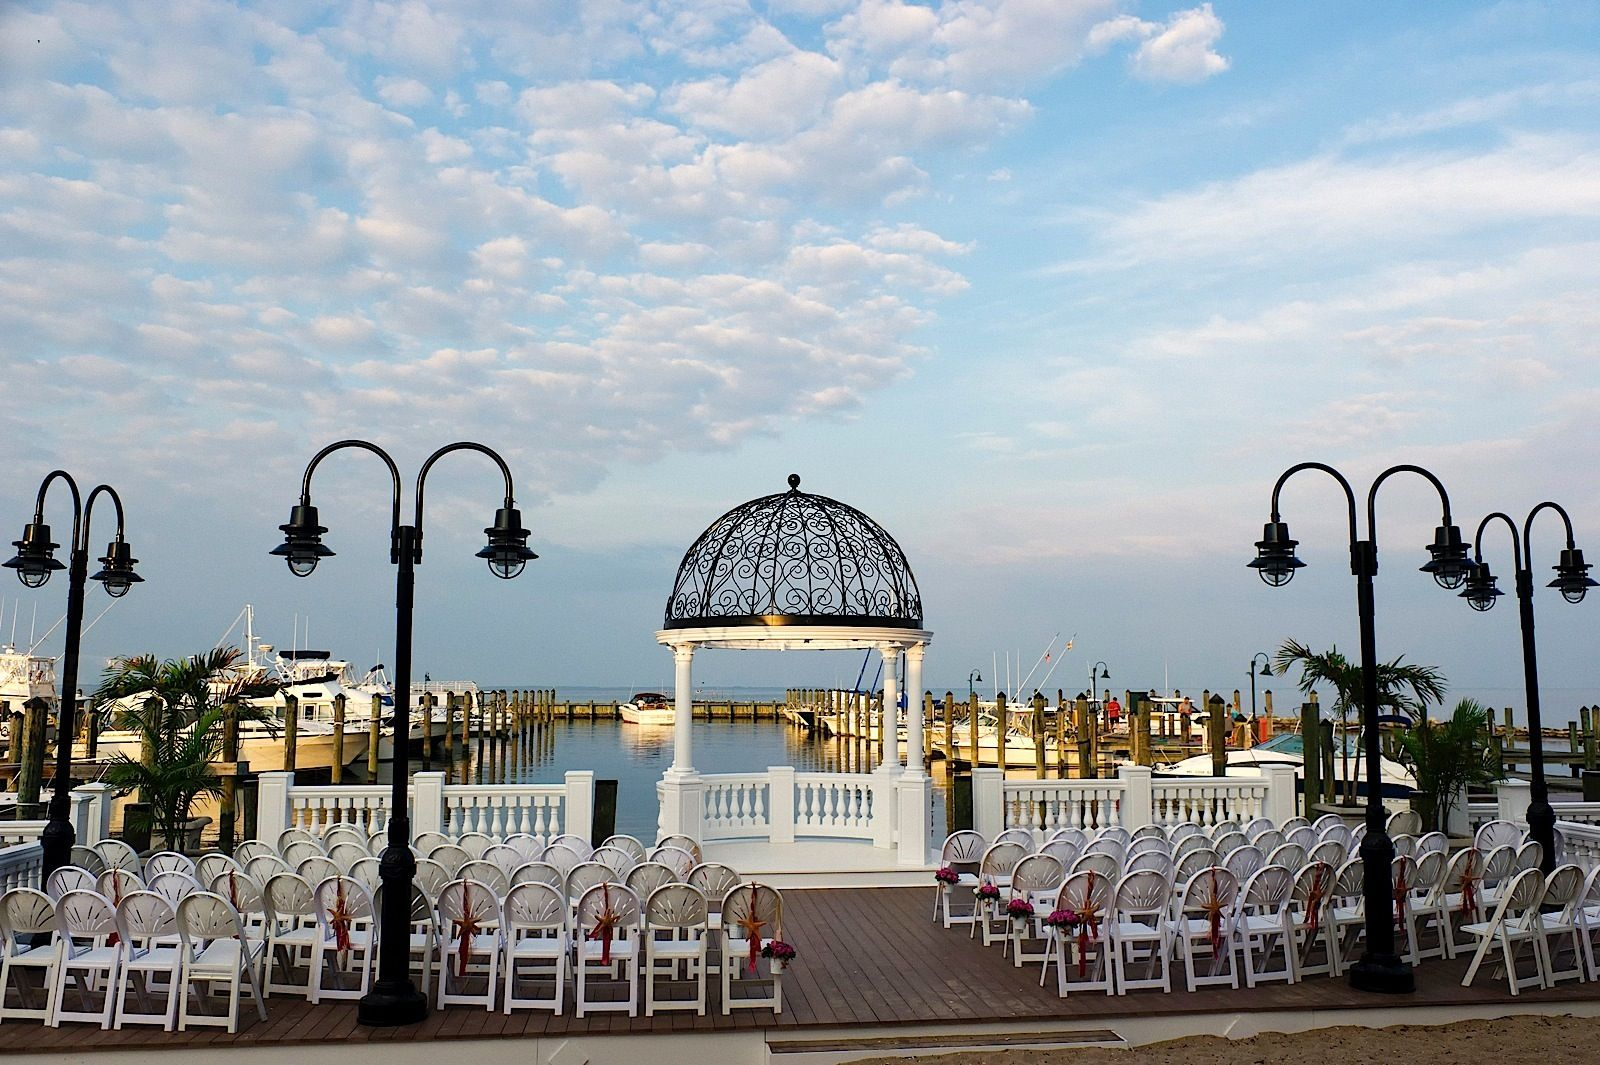 Chesapeake Bay Wedding Venues Hotel Md Another Great Deal Offers In House